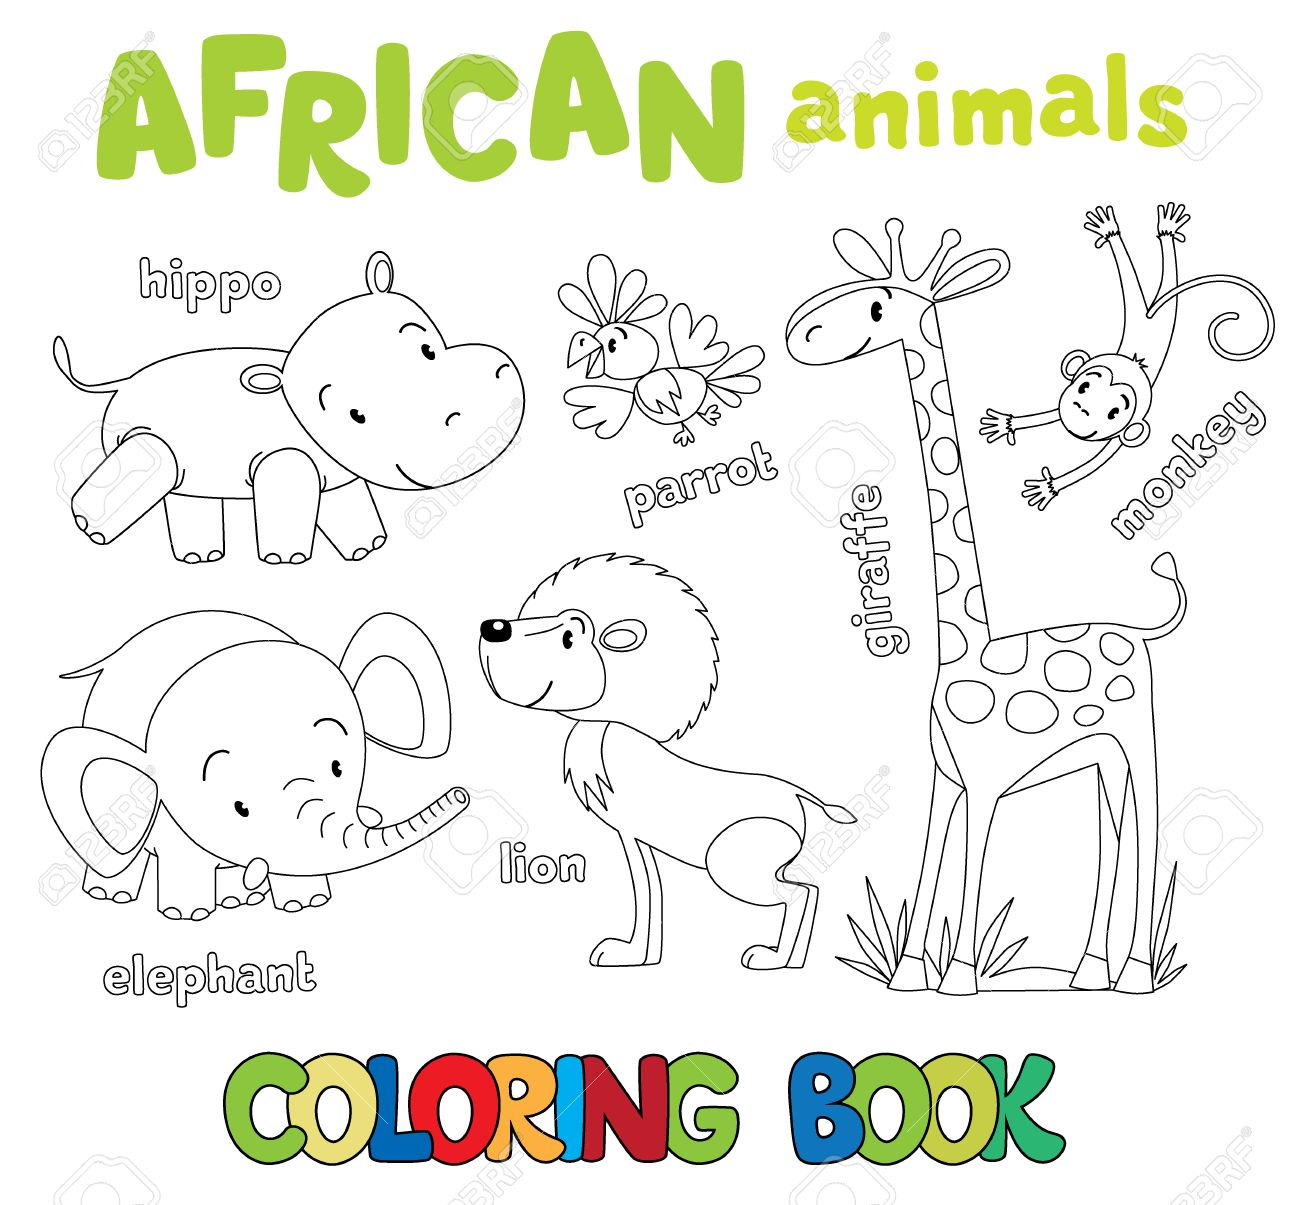 Coloring Book Or Picture Set Of Funny Cute African Animals Hippo And Parrot